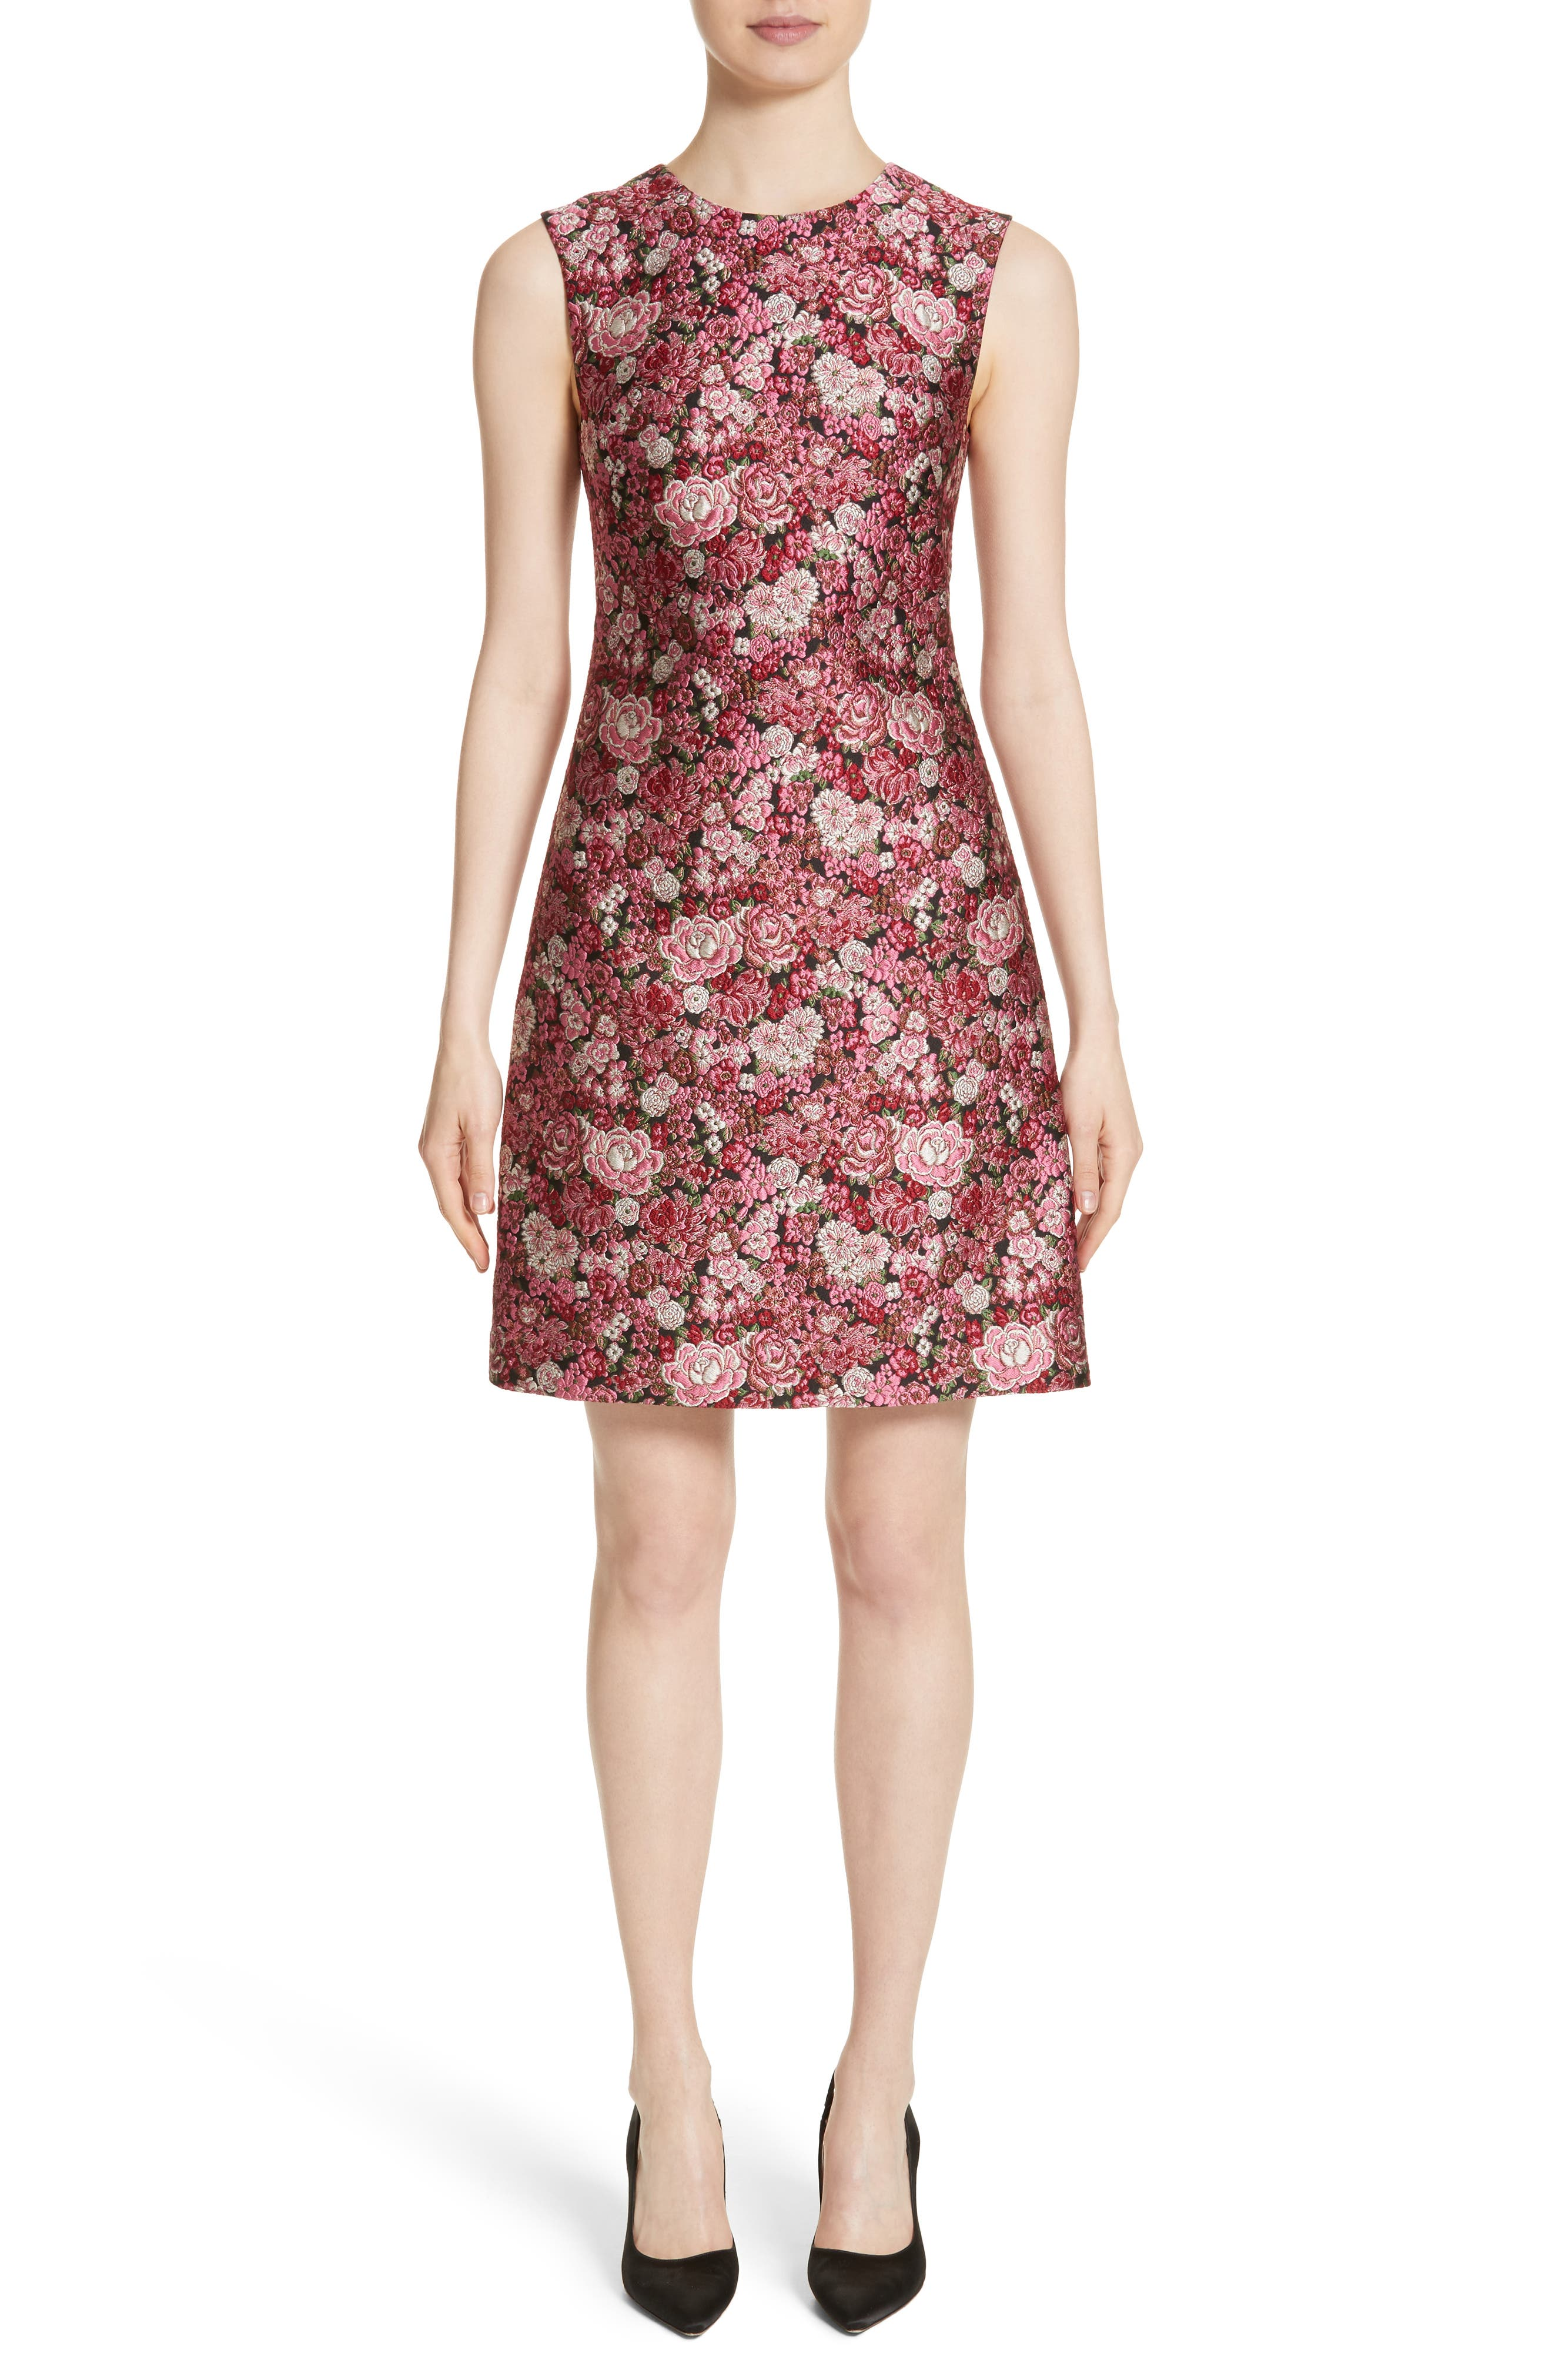 Adam Lippes Floral Brocade Dress